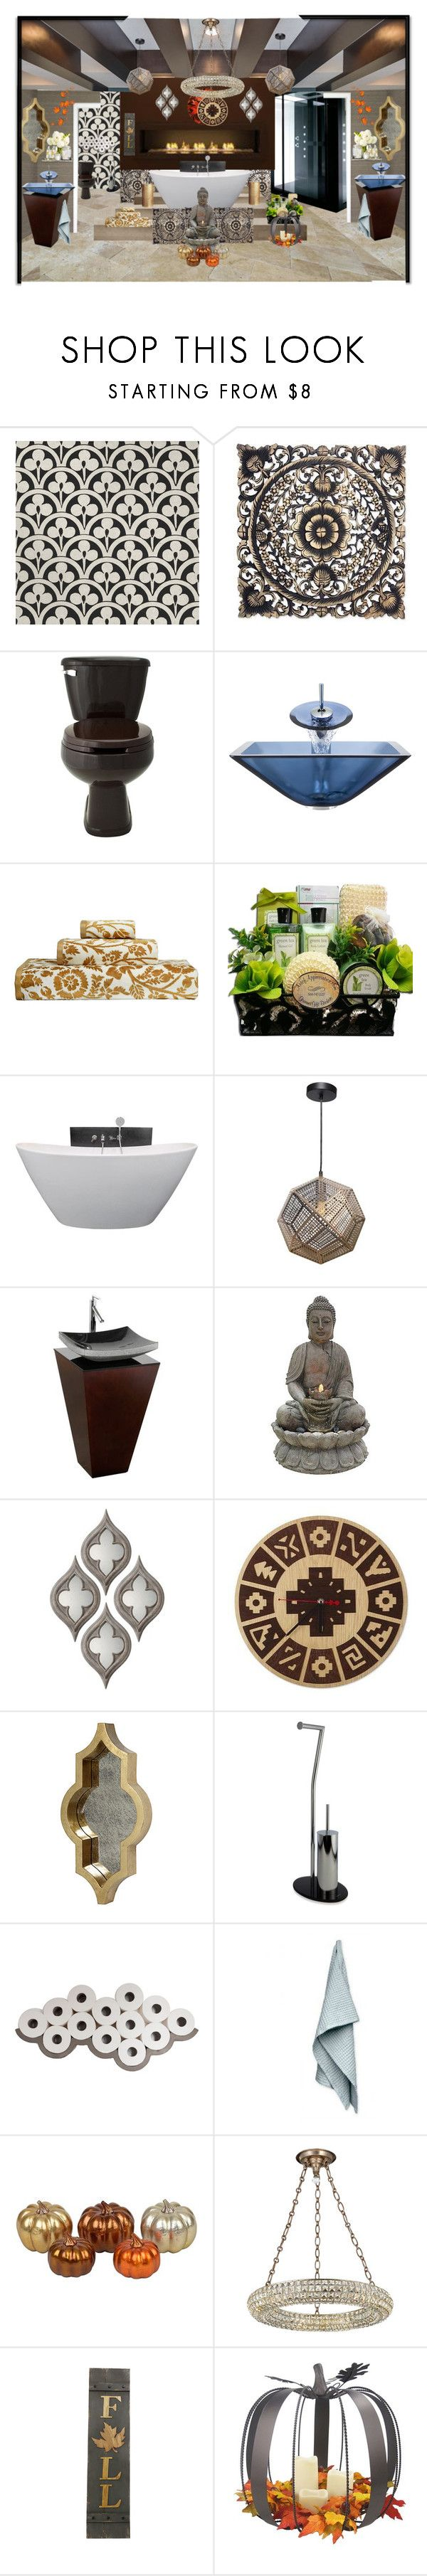 """""""fall Master Bathroom"""" by dixiemartel ❤ liked on Polyvore featuring Art Classics, NOVICA, Polaris, John Robshaw, Renwil, Wyndham Collection, Alpine, Möve, Lyon Béton and The Organic Company"""